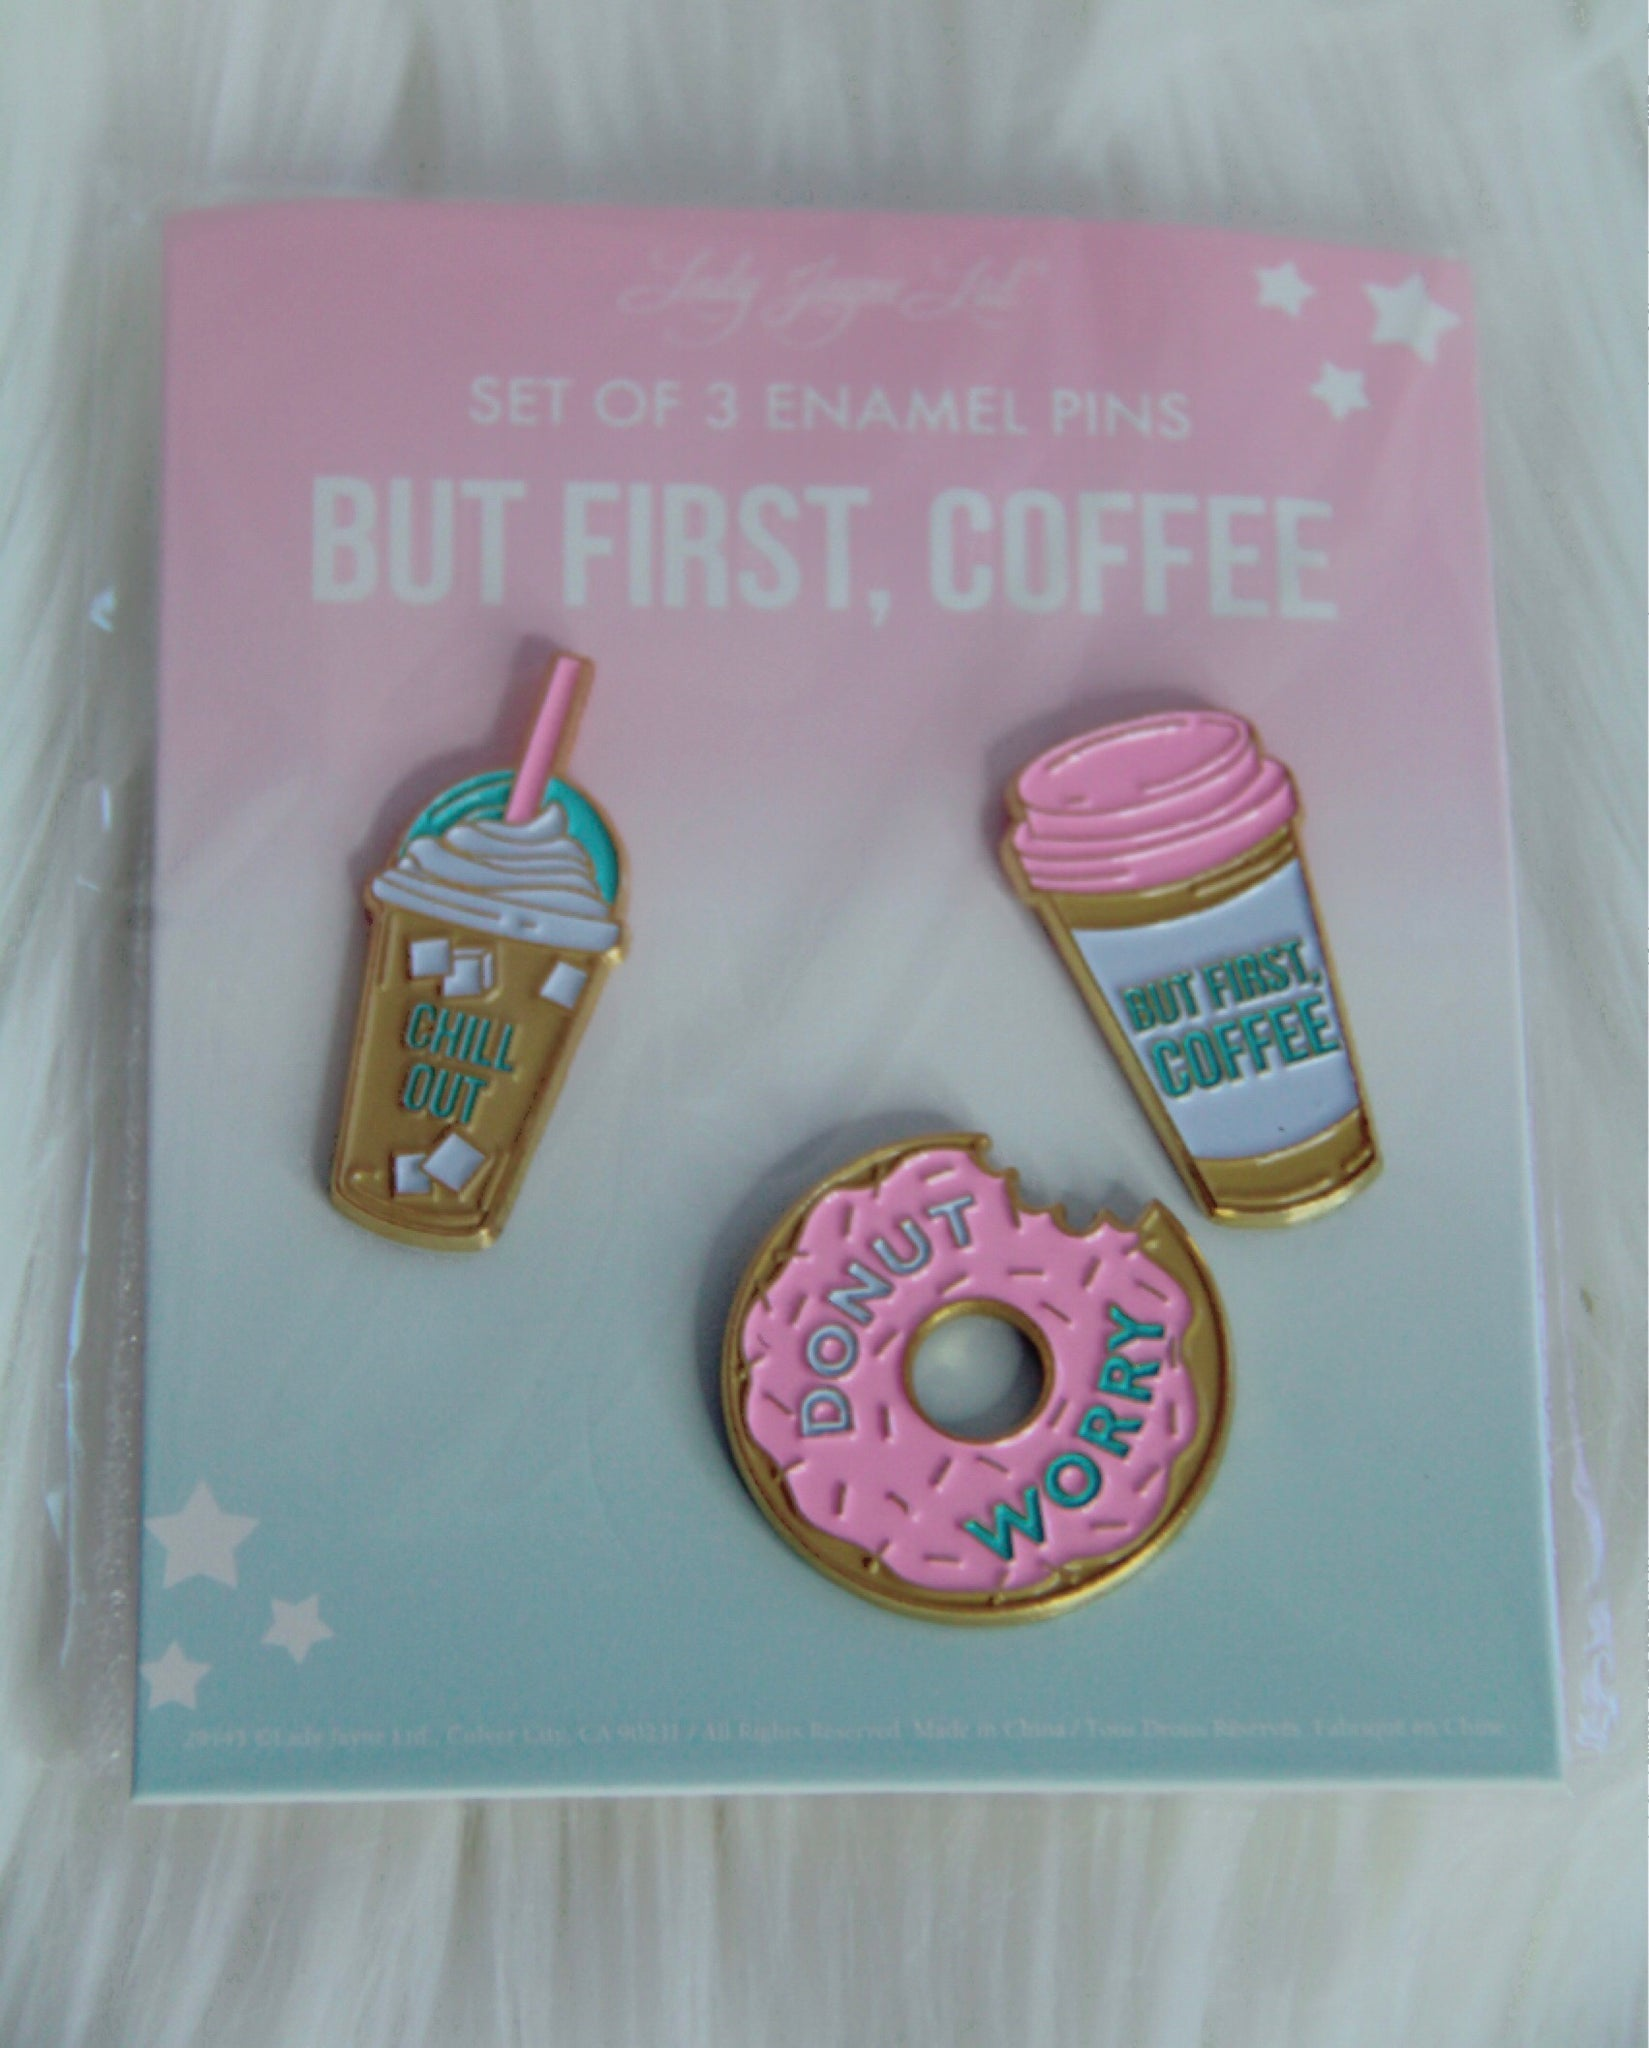 Cute colorful pins - Classy Pink Boutique